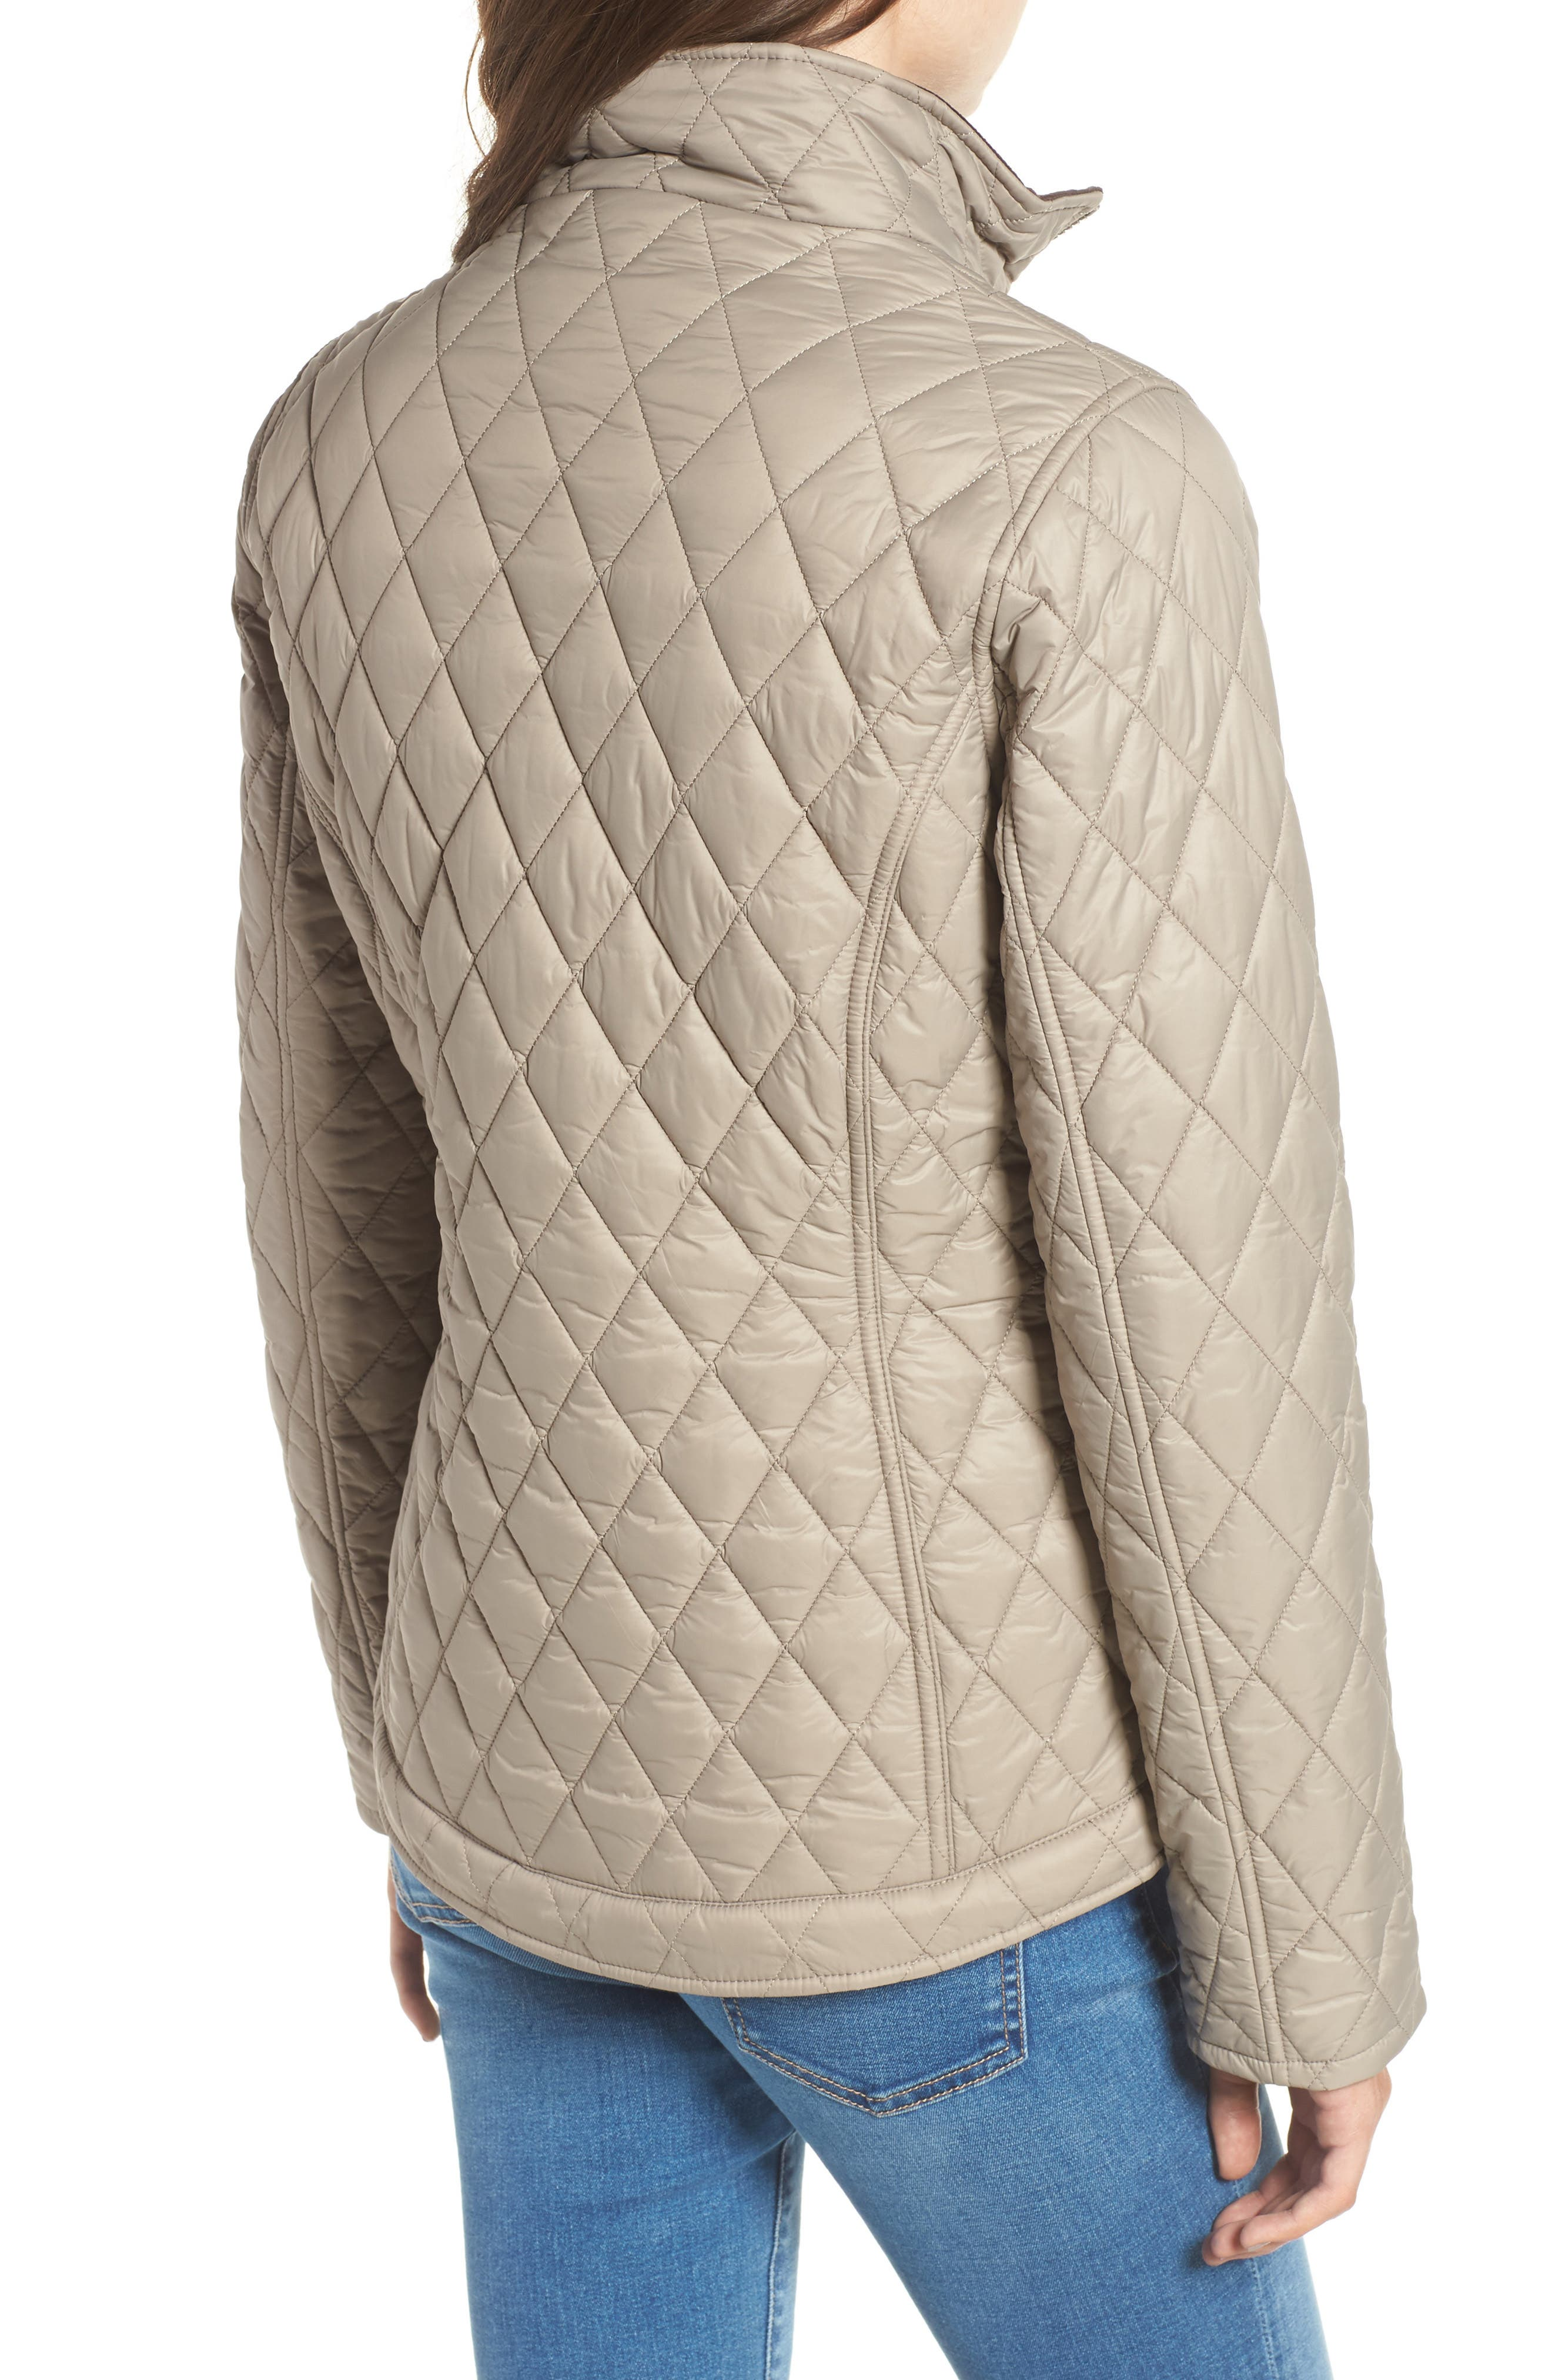 Dolostone Quilted Jacket,                             Alternate thumbnail 5, color,